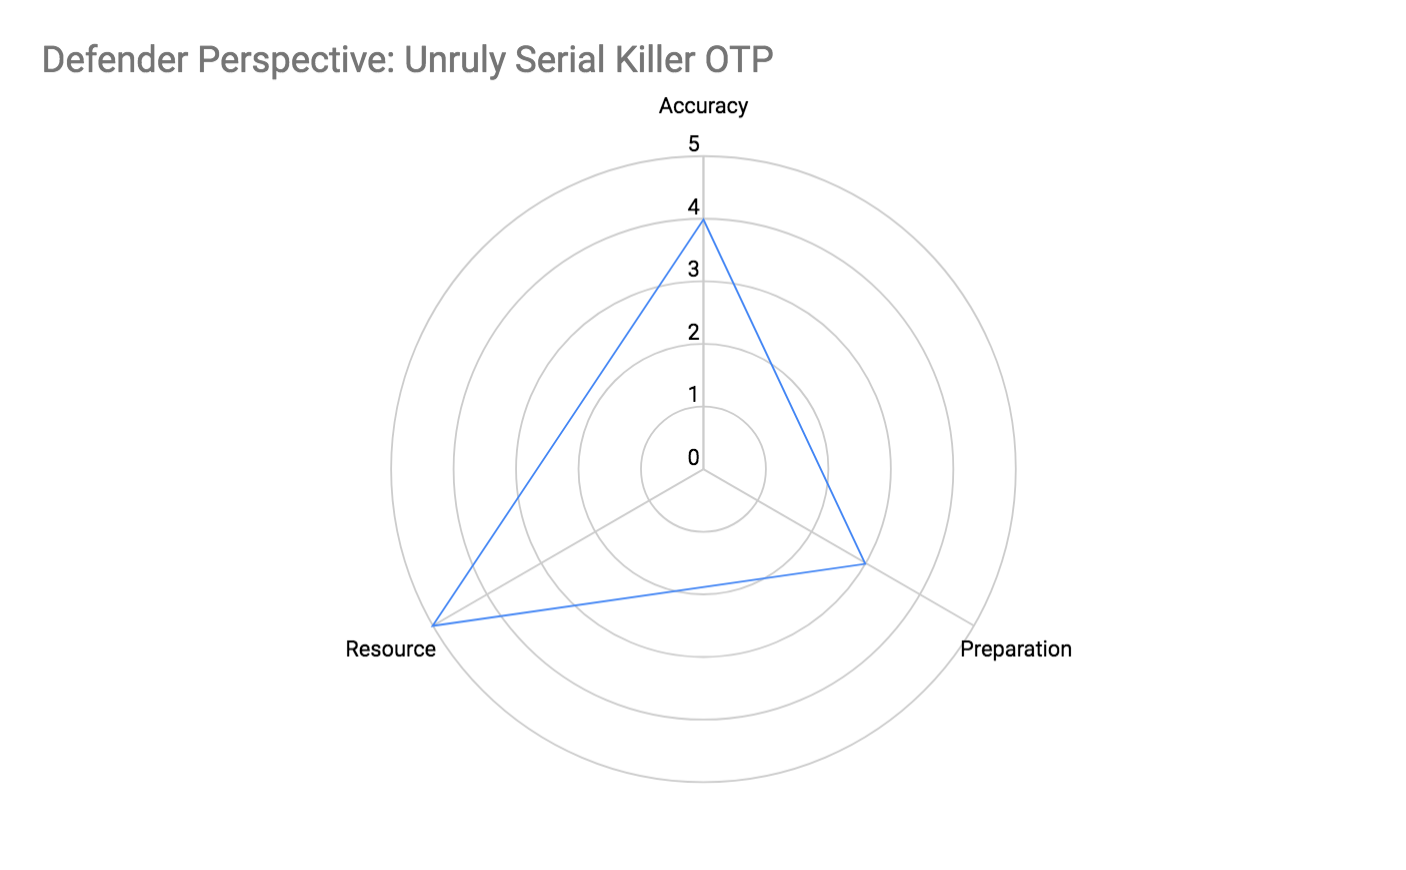 Defender Perspective: Unruly Serial Killer OTP Attributes